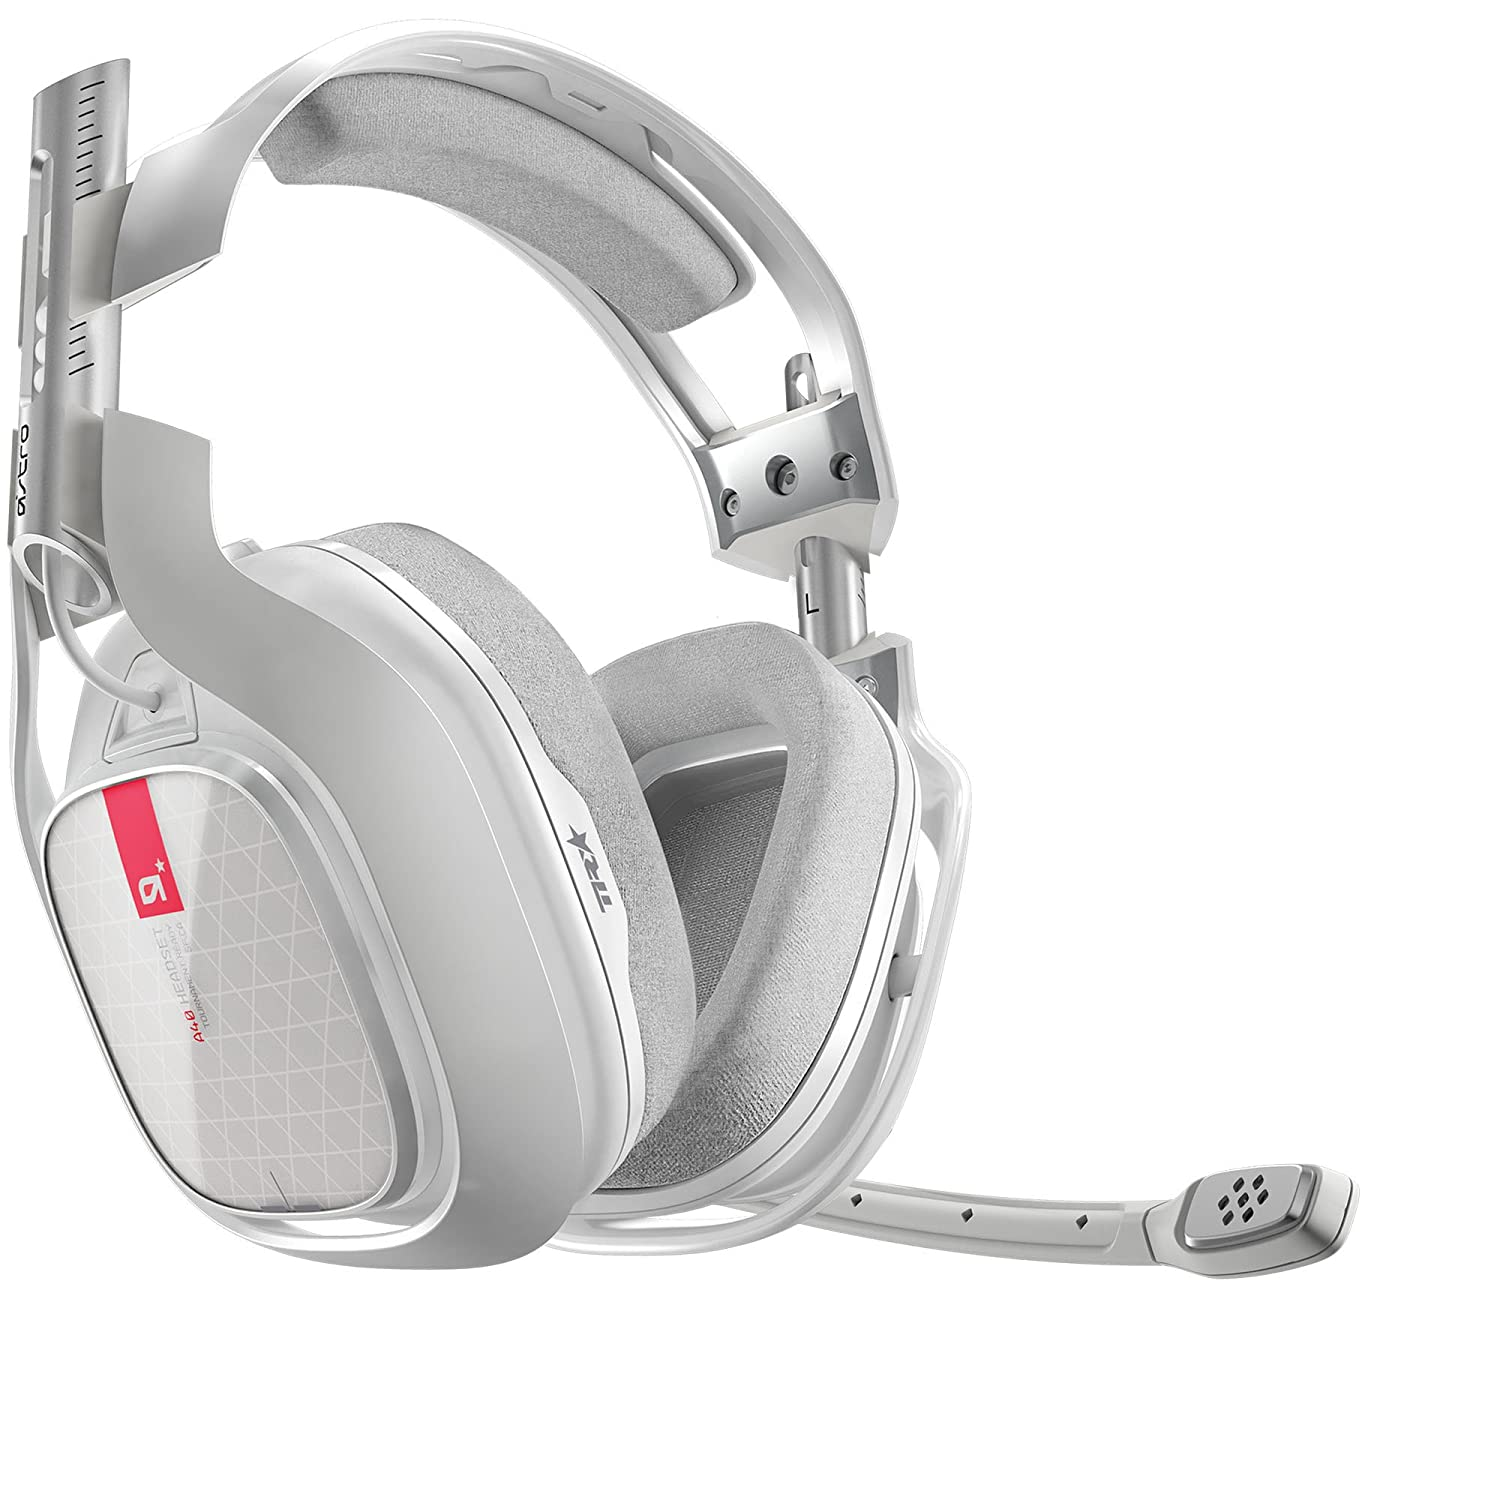 A40 TR PC Headset - White